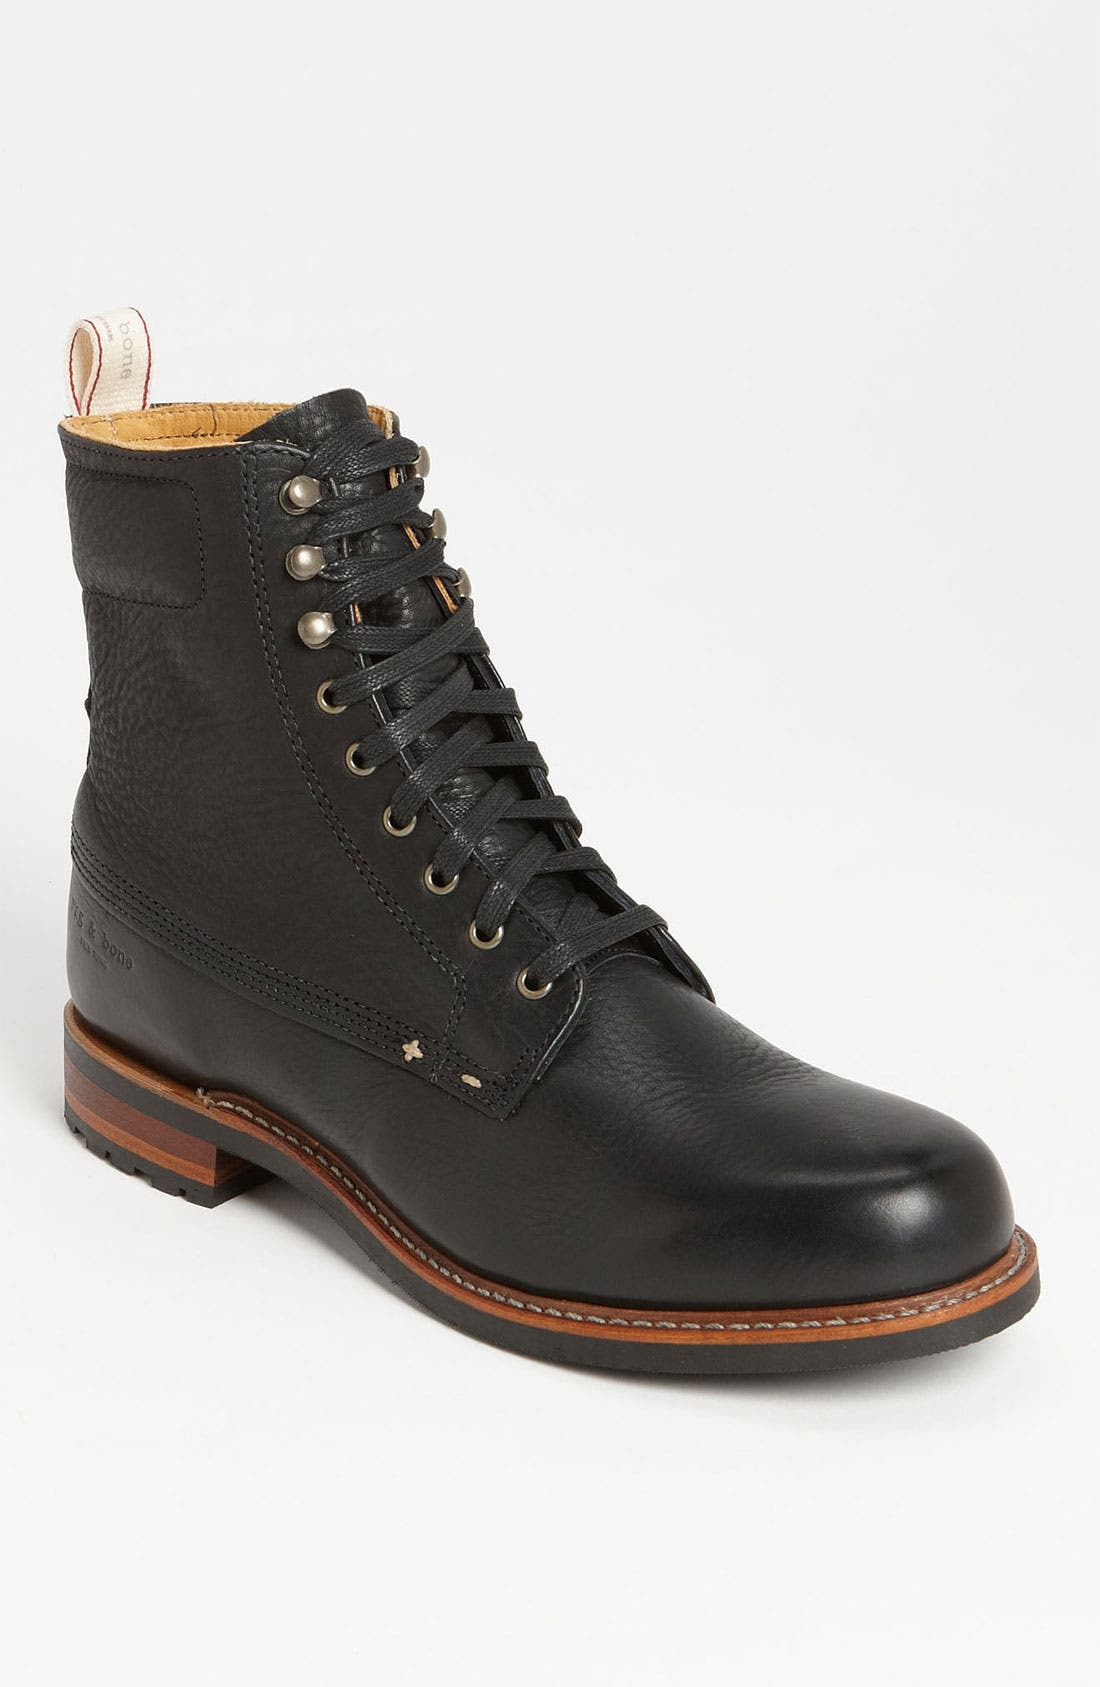 Main Image - rag & bone 'Officer' Boot